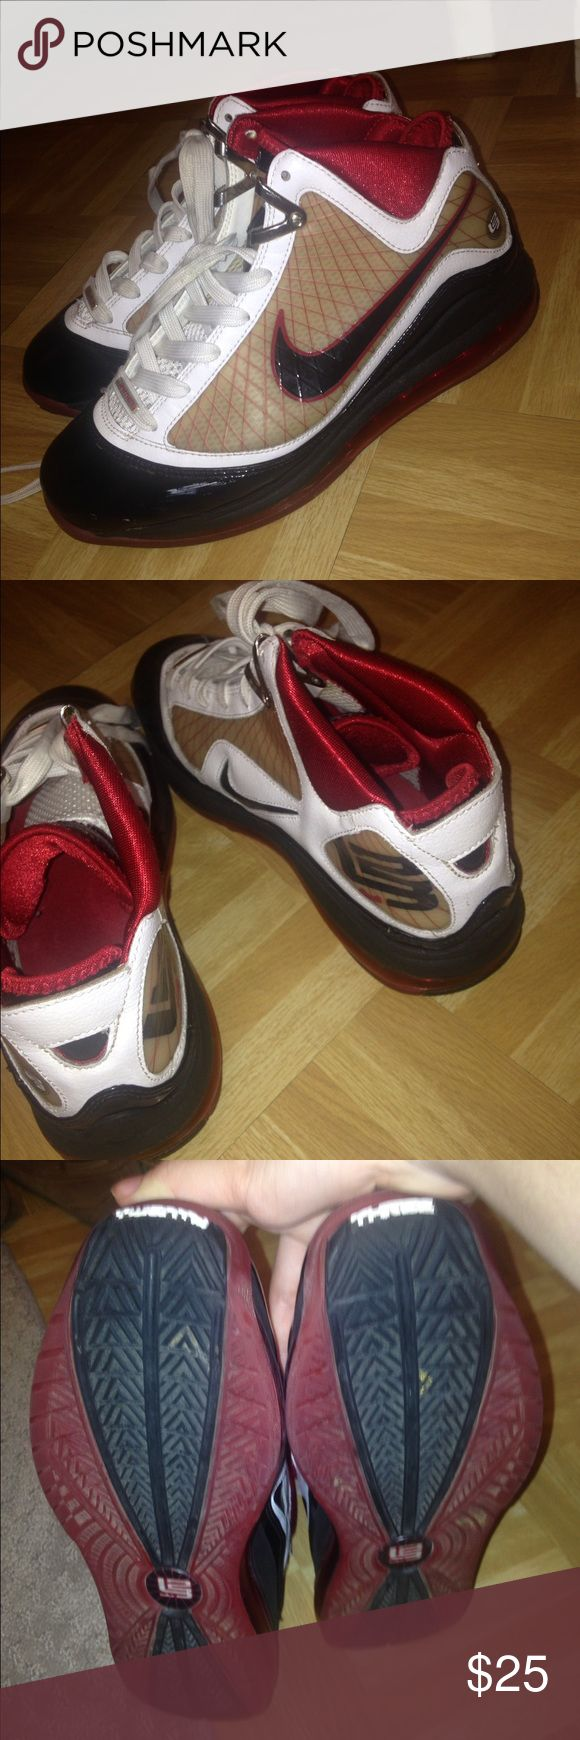 Red & Black Lebrons Lebron 23s in great condition except for a tiny bit of white paint on the side of left shoe - it just looks like shine. They are 6.5 youth. Which is an 8.5 in women's. Will negotiate. Nike Shoes Sneakers